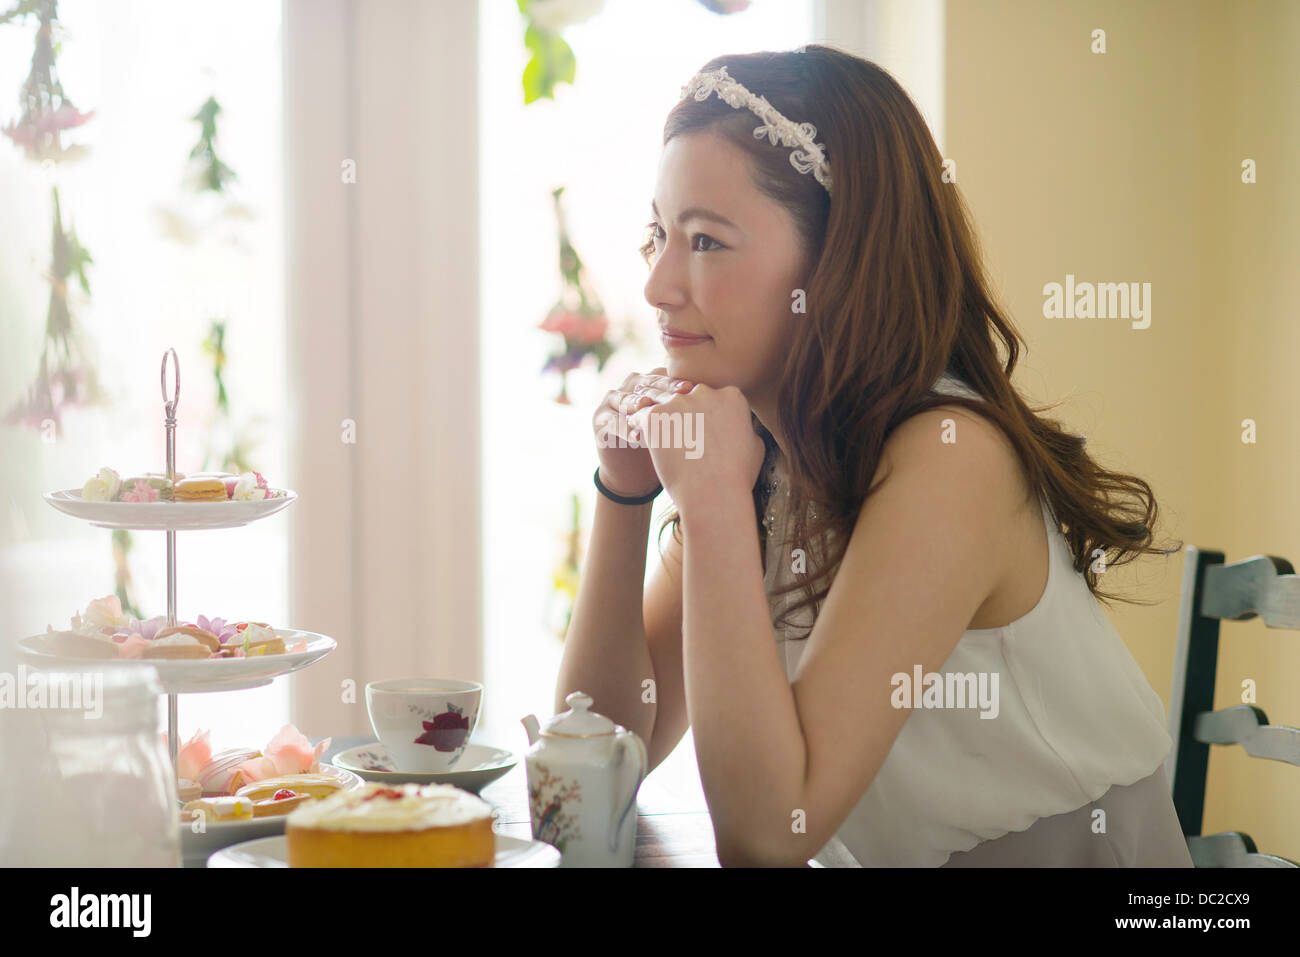 Woman day dreaming at tea time - Stock Image